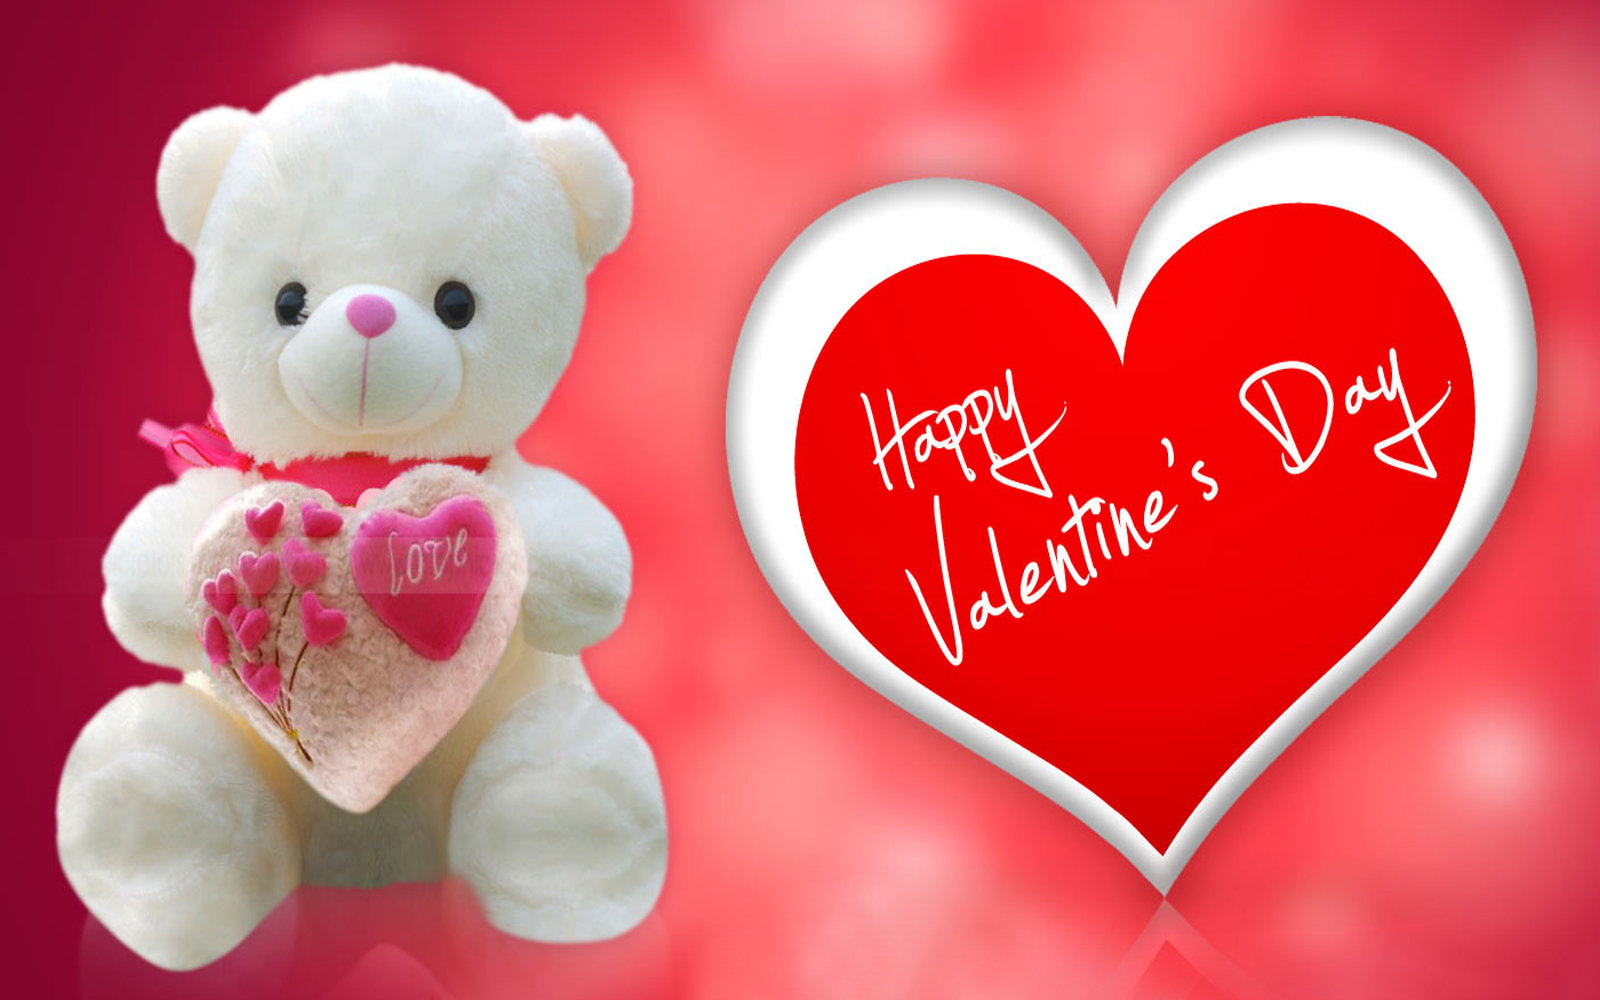 happy valentines day images, hd wallpapers, photos & pics, whatsapp